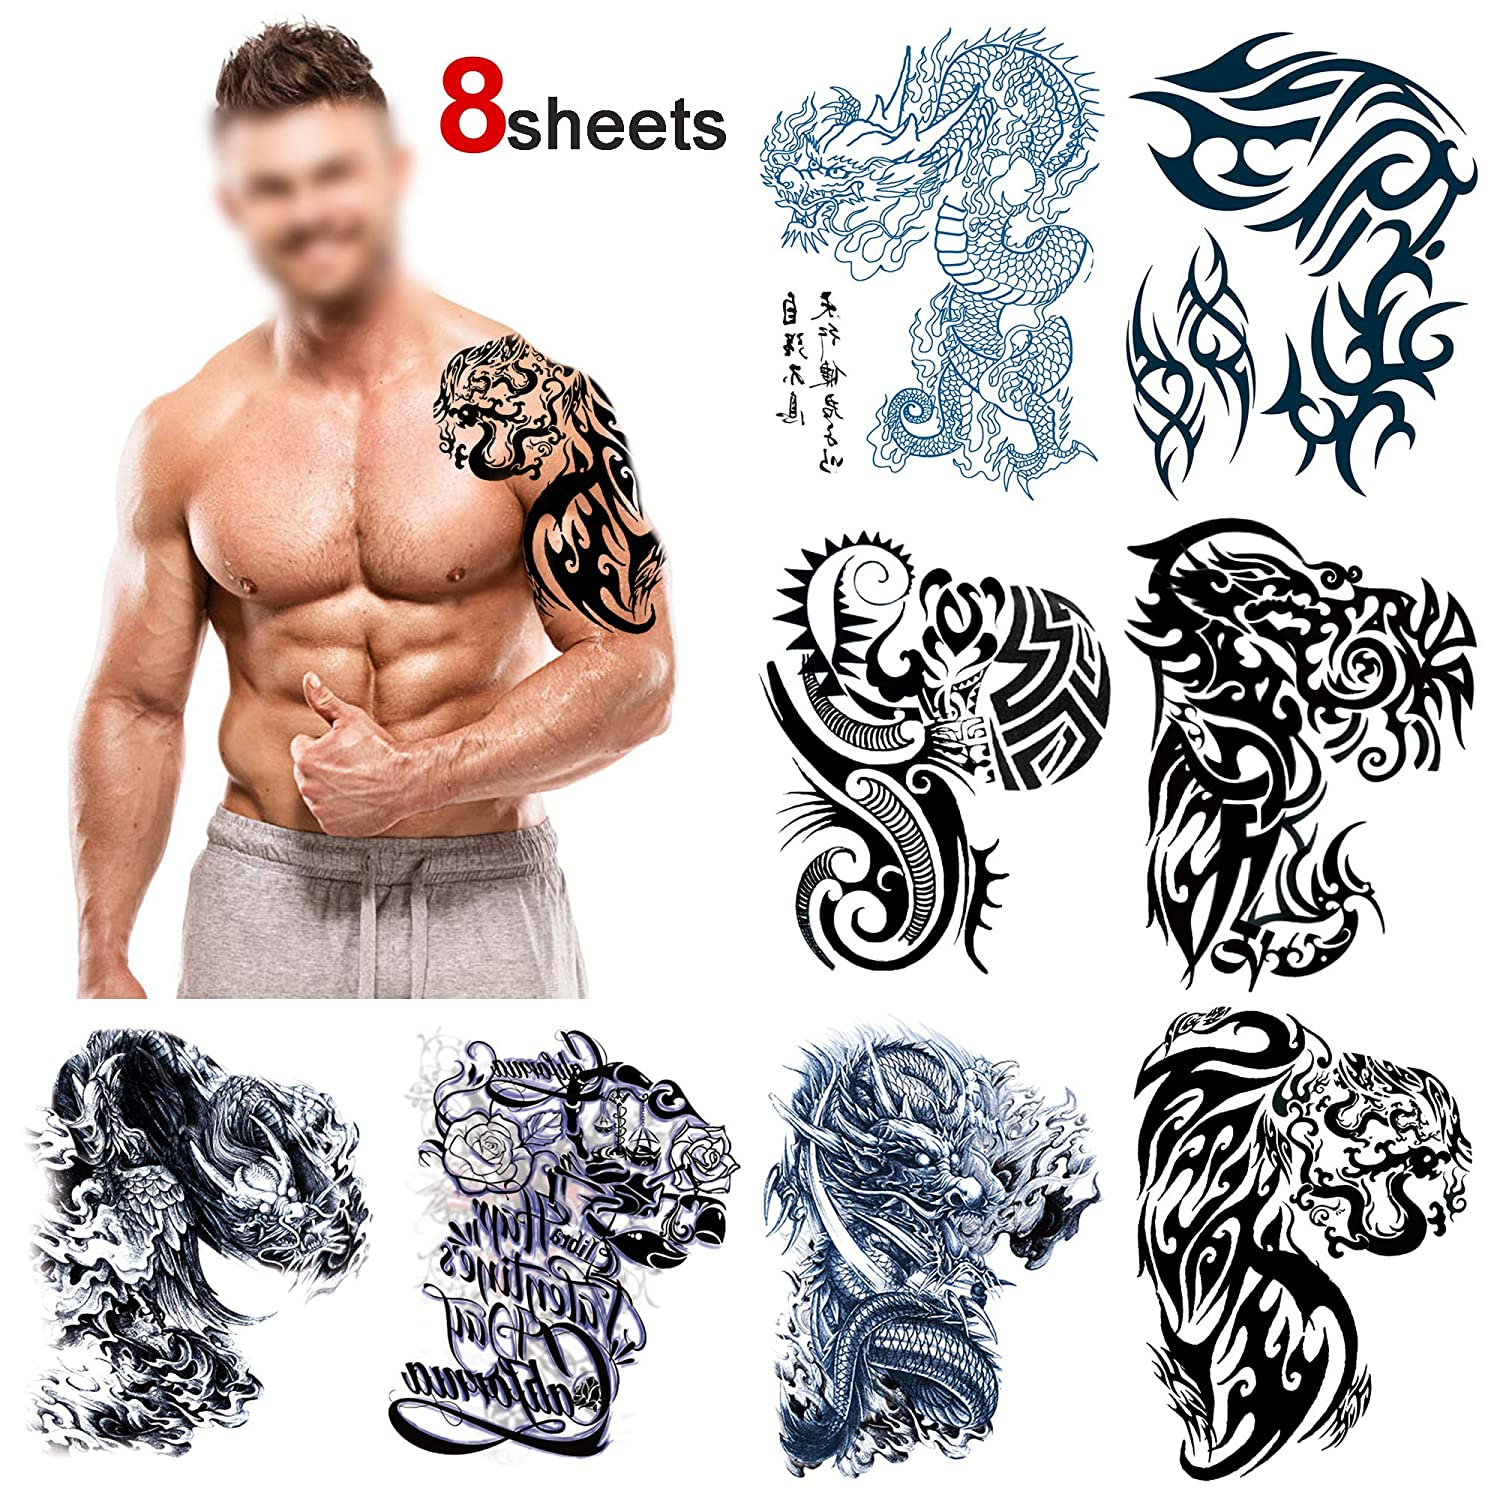 Konsait Large Temporary Tattoos Half Arm Chest Tattoo Men Tribal Totem Tattoo Make Up Body Art Sticker For Halloween Party Supplies Beach Pool Party